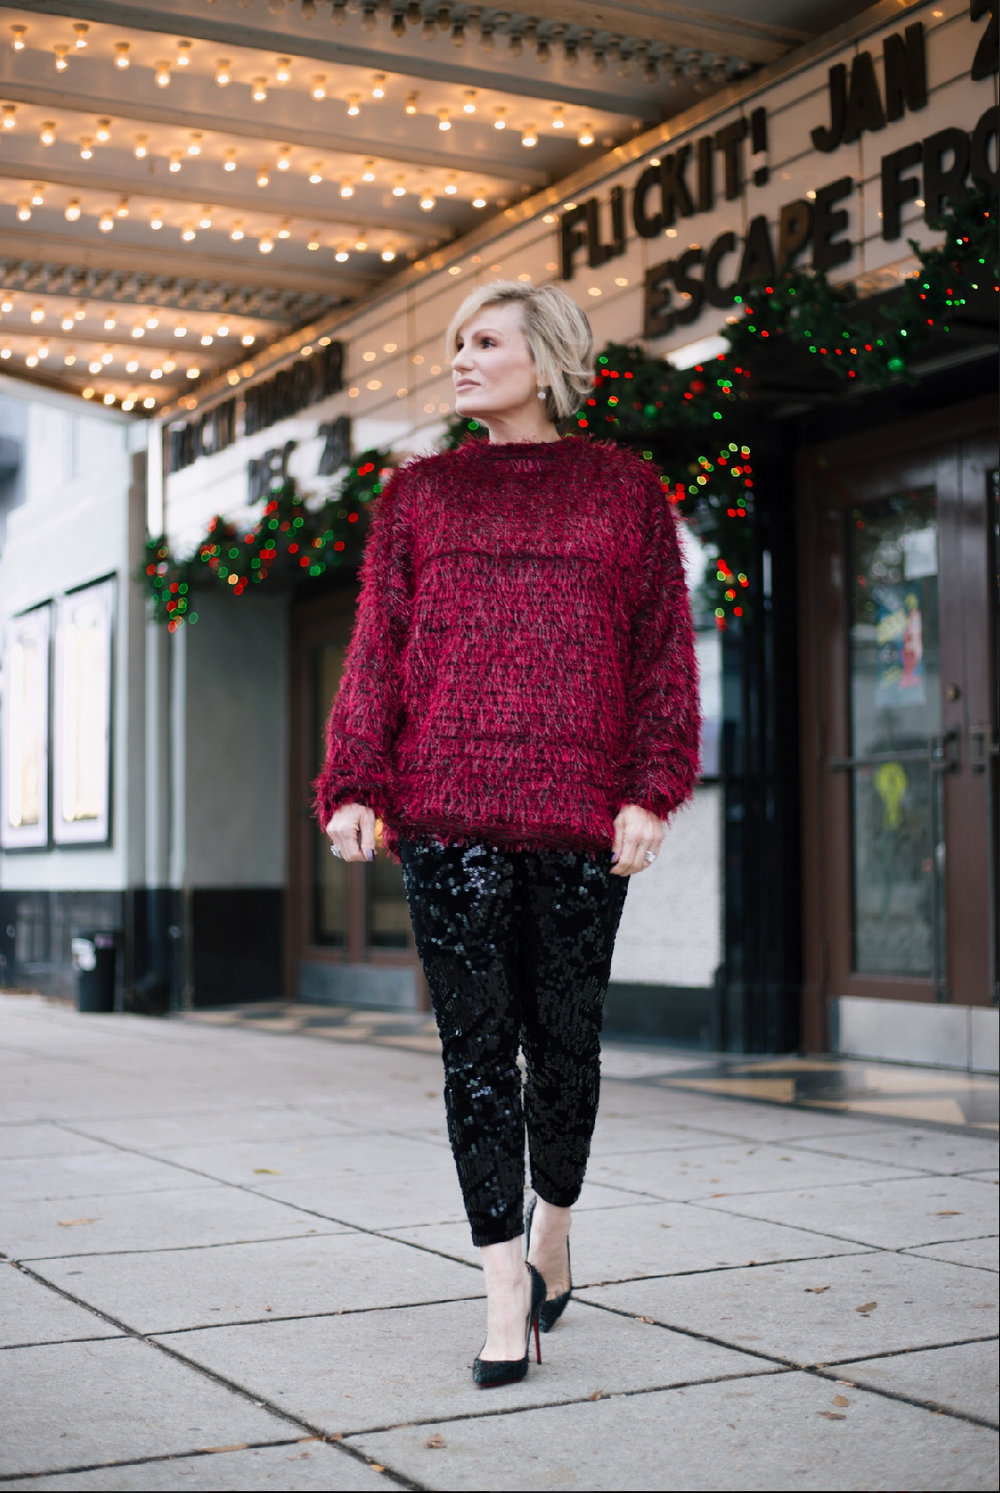 Sequin leggings with a fun colorful sweater for a simple but effective festive look.